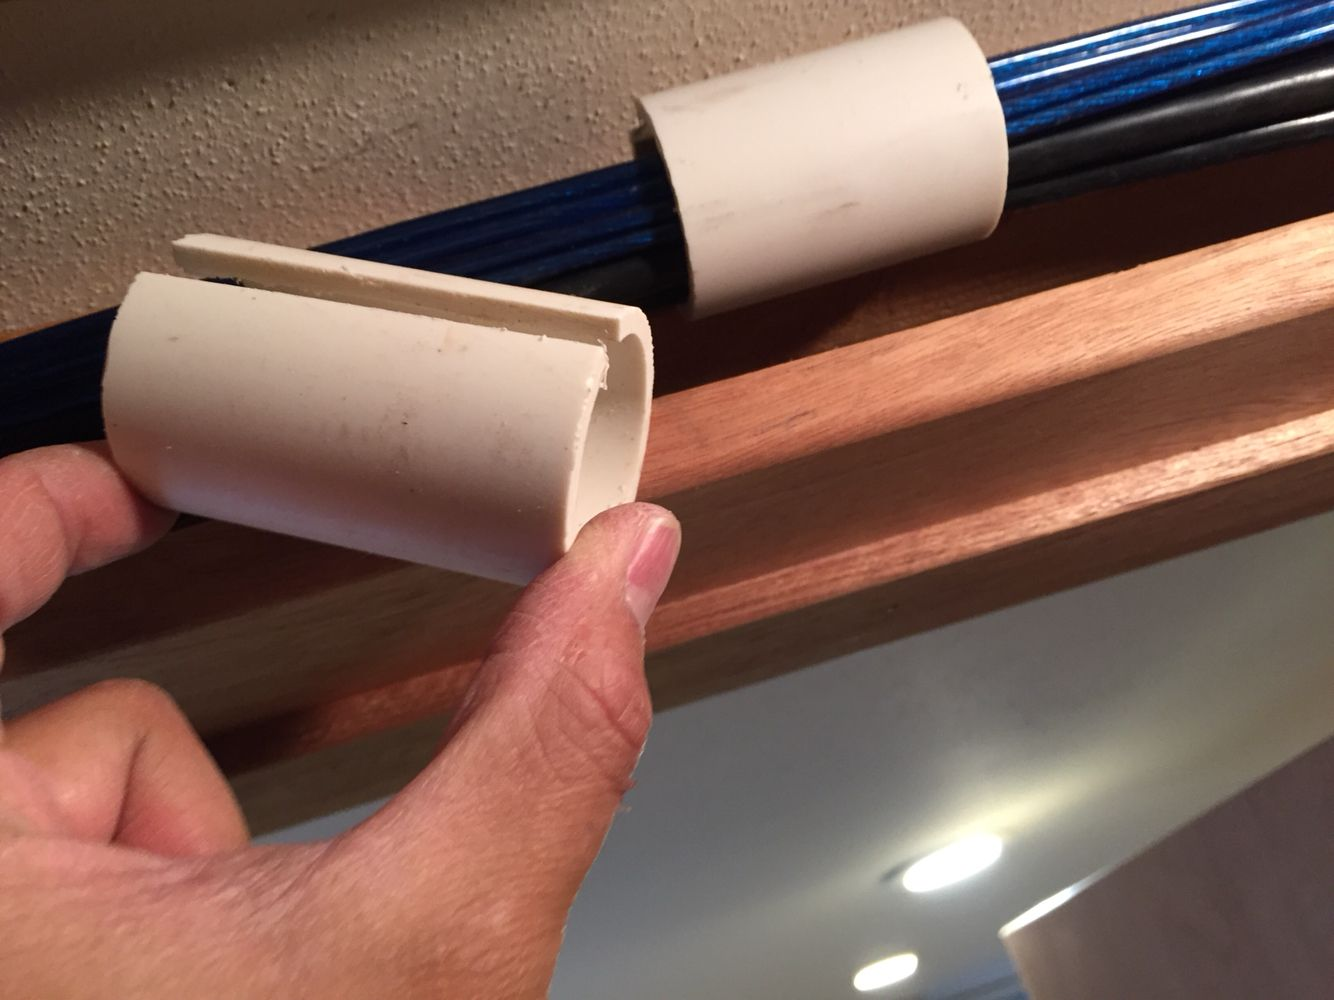 medium resolution of diy cable management system using a pvc pipe with a slit in it allowing for easy